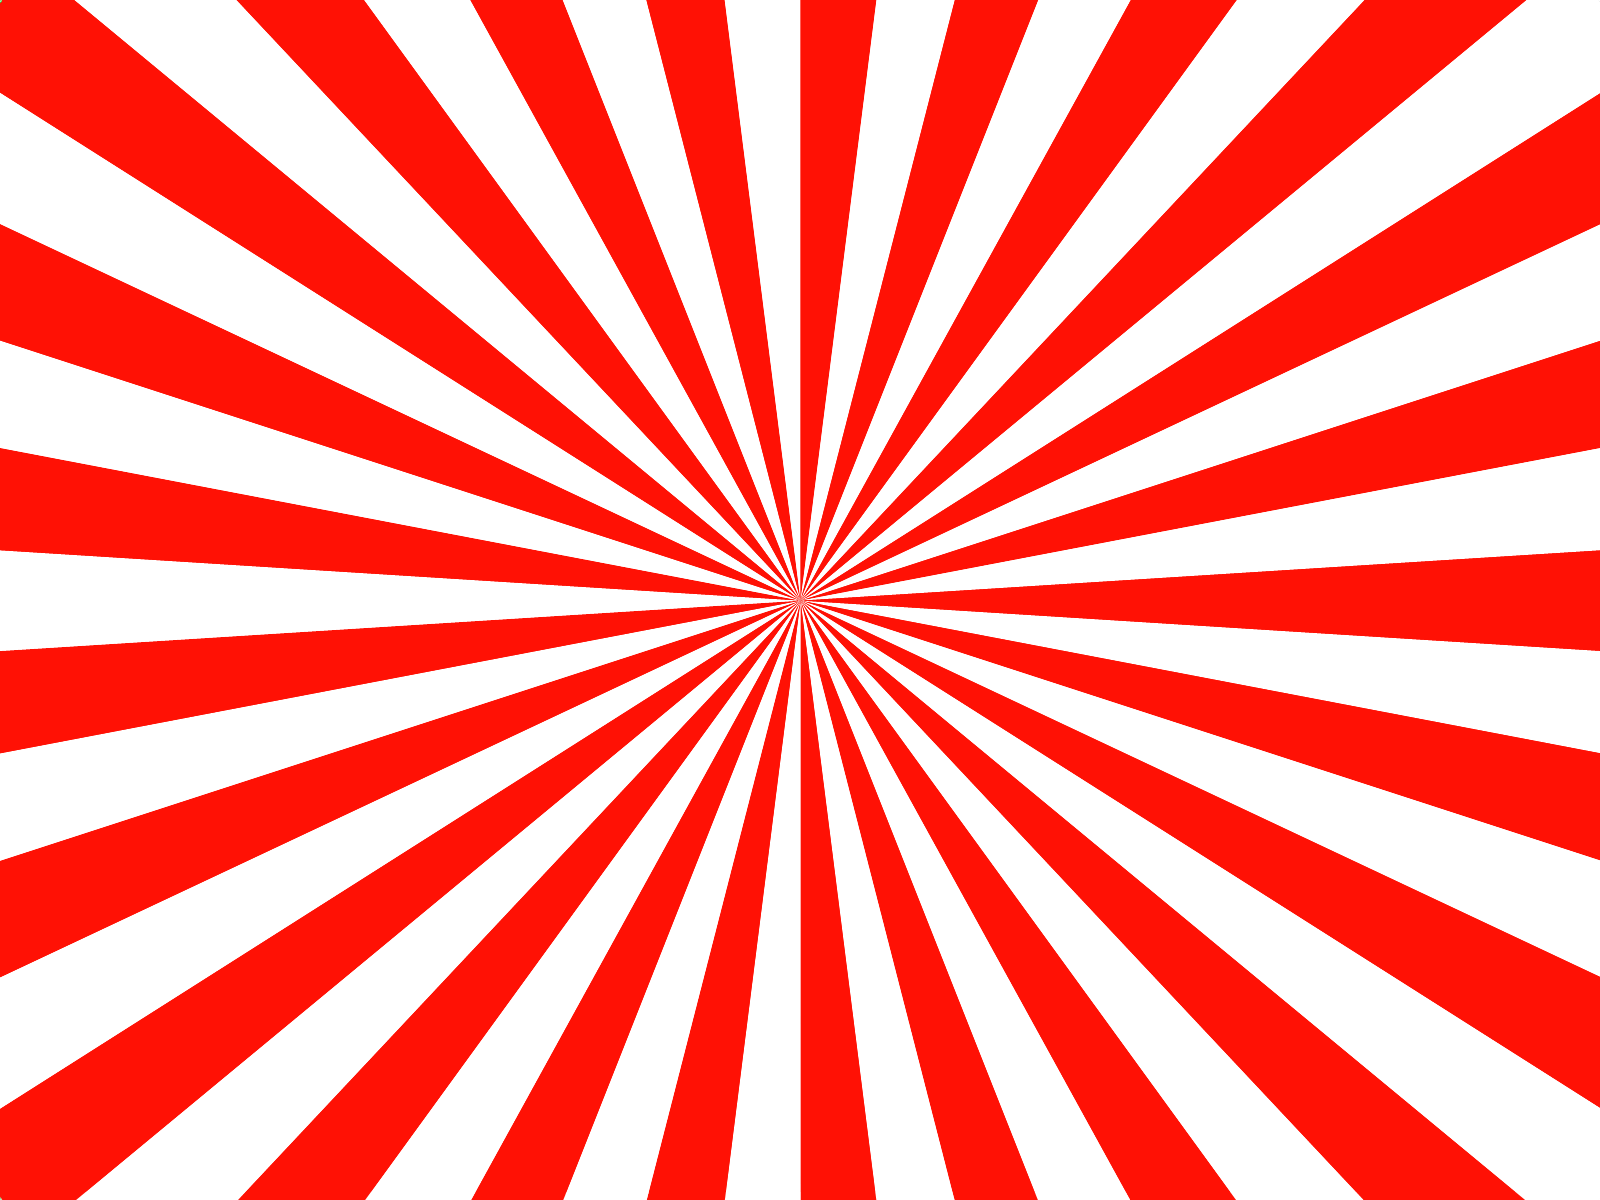 red stripes background by spooky dream 1600x1200